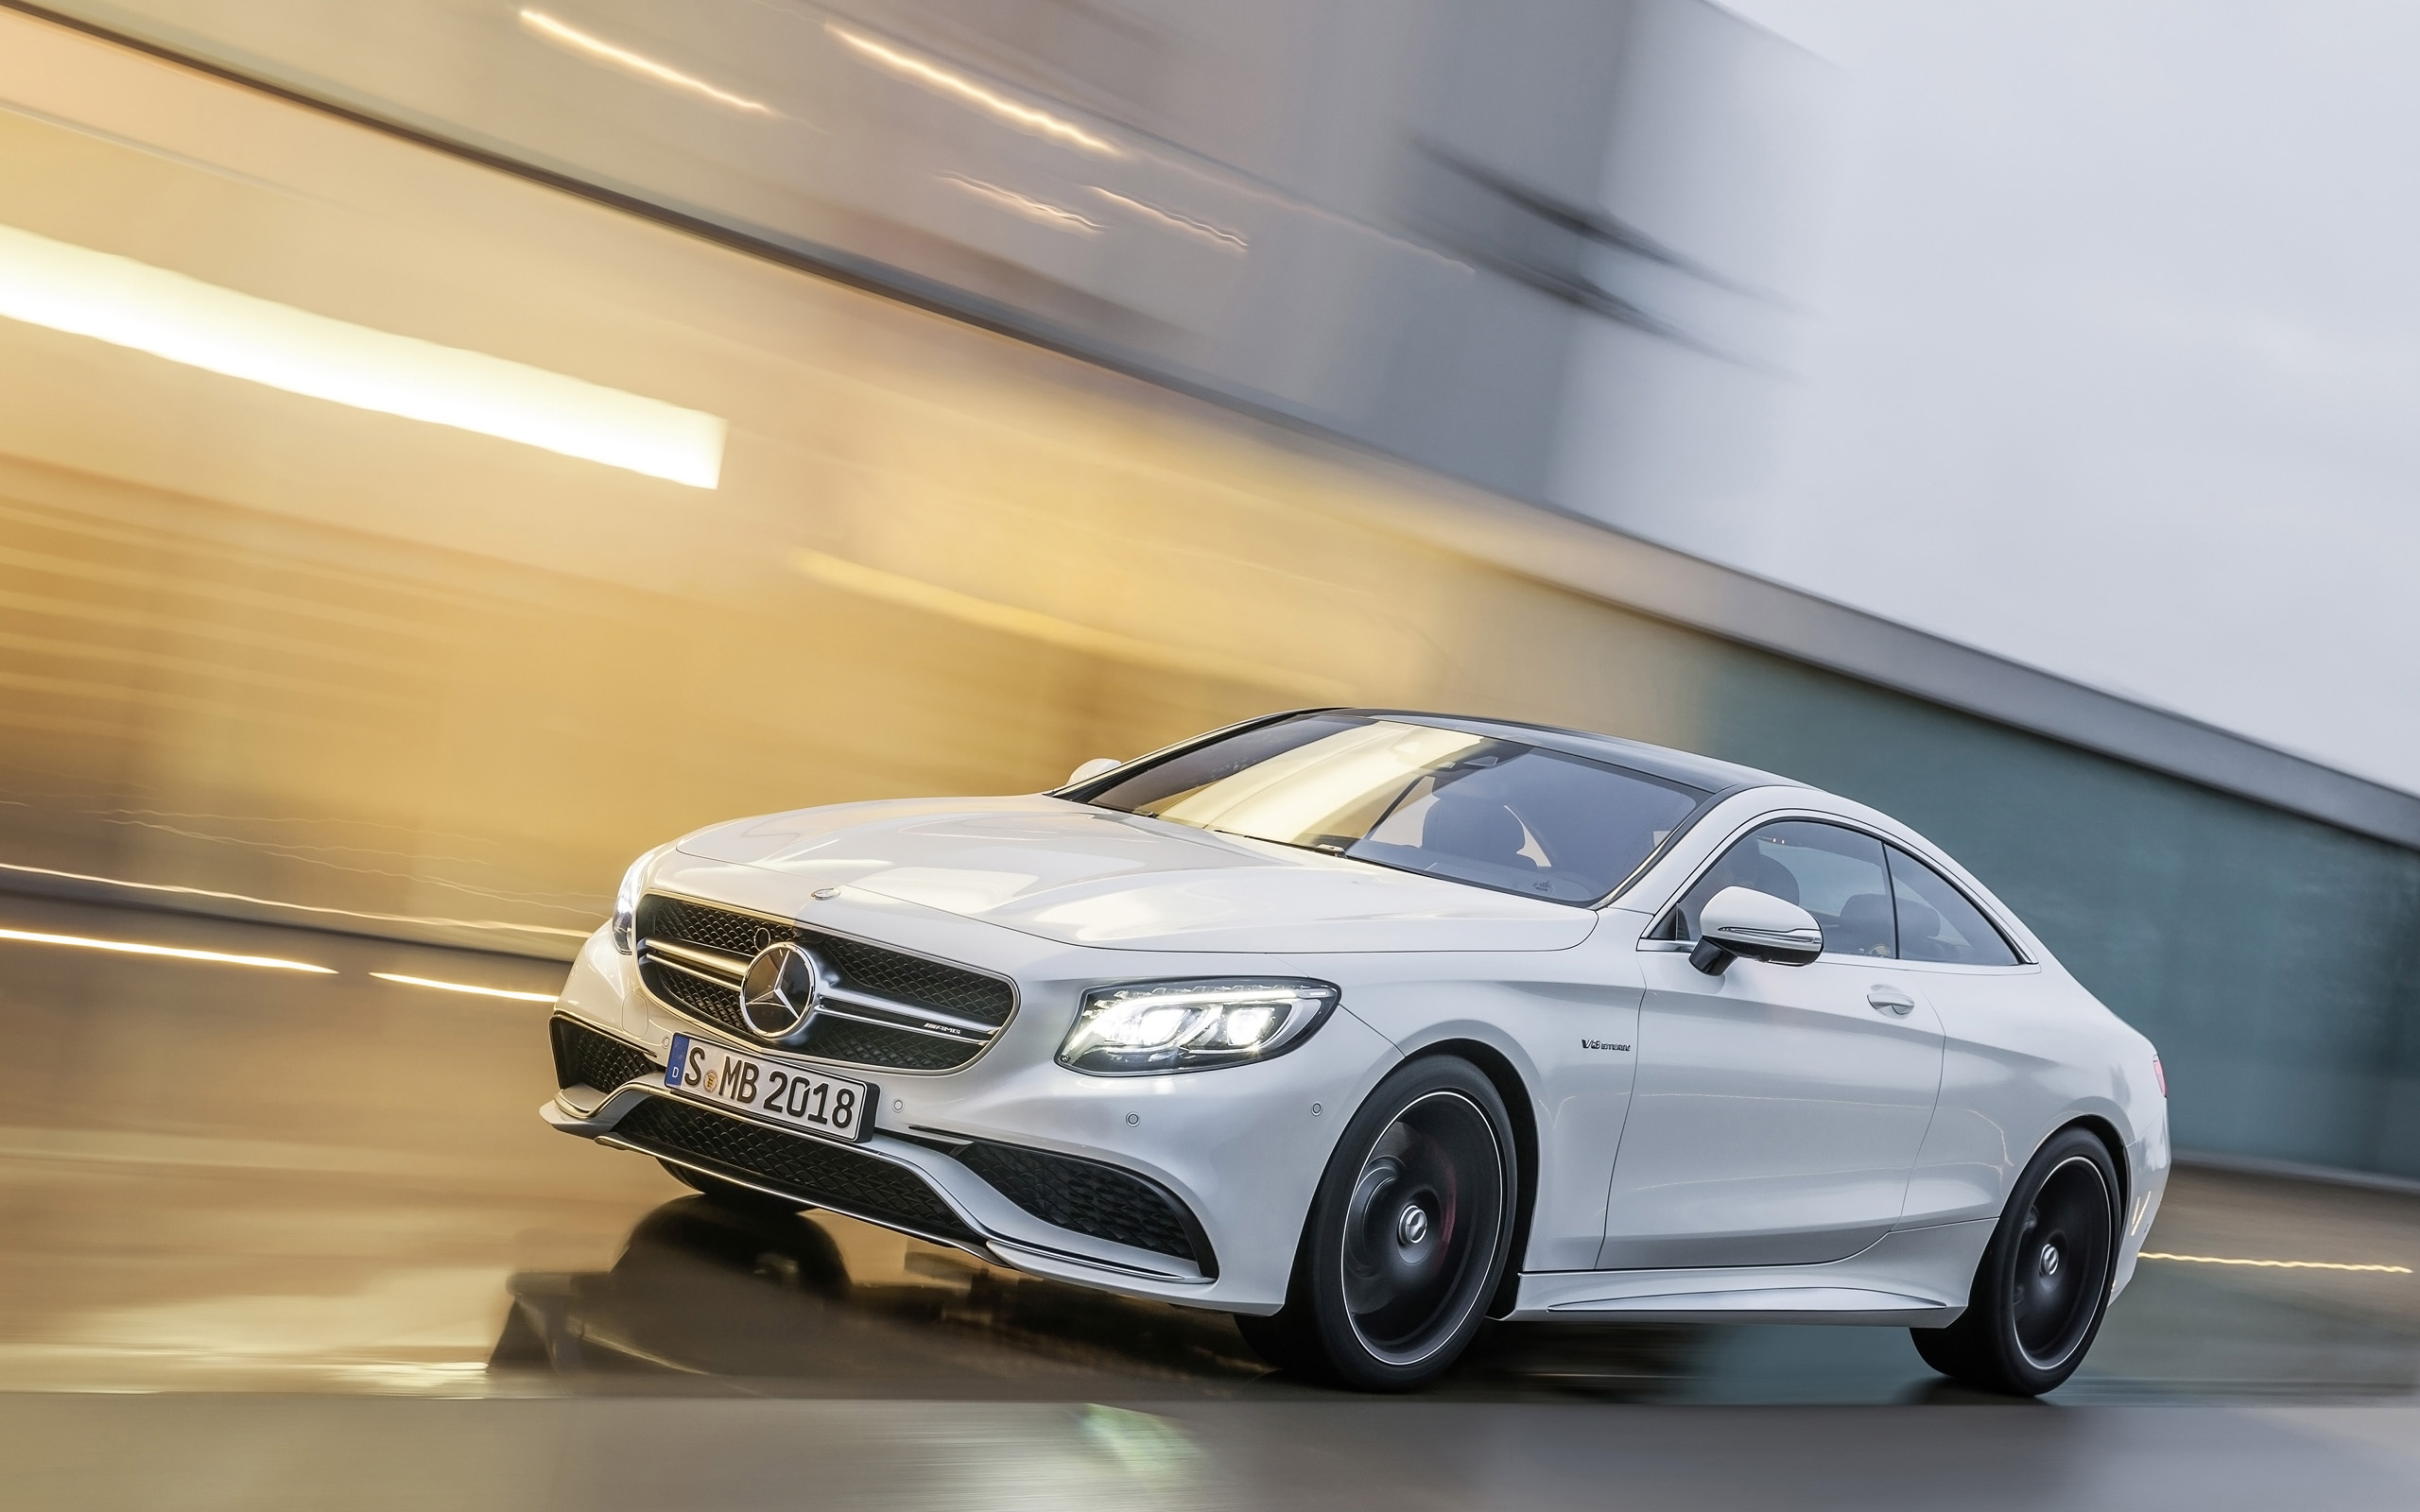 2014 Mercedes Benz S 63 Amg Coupe Wallpaper Hd Car Wallpapers Id